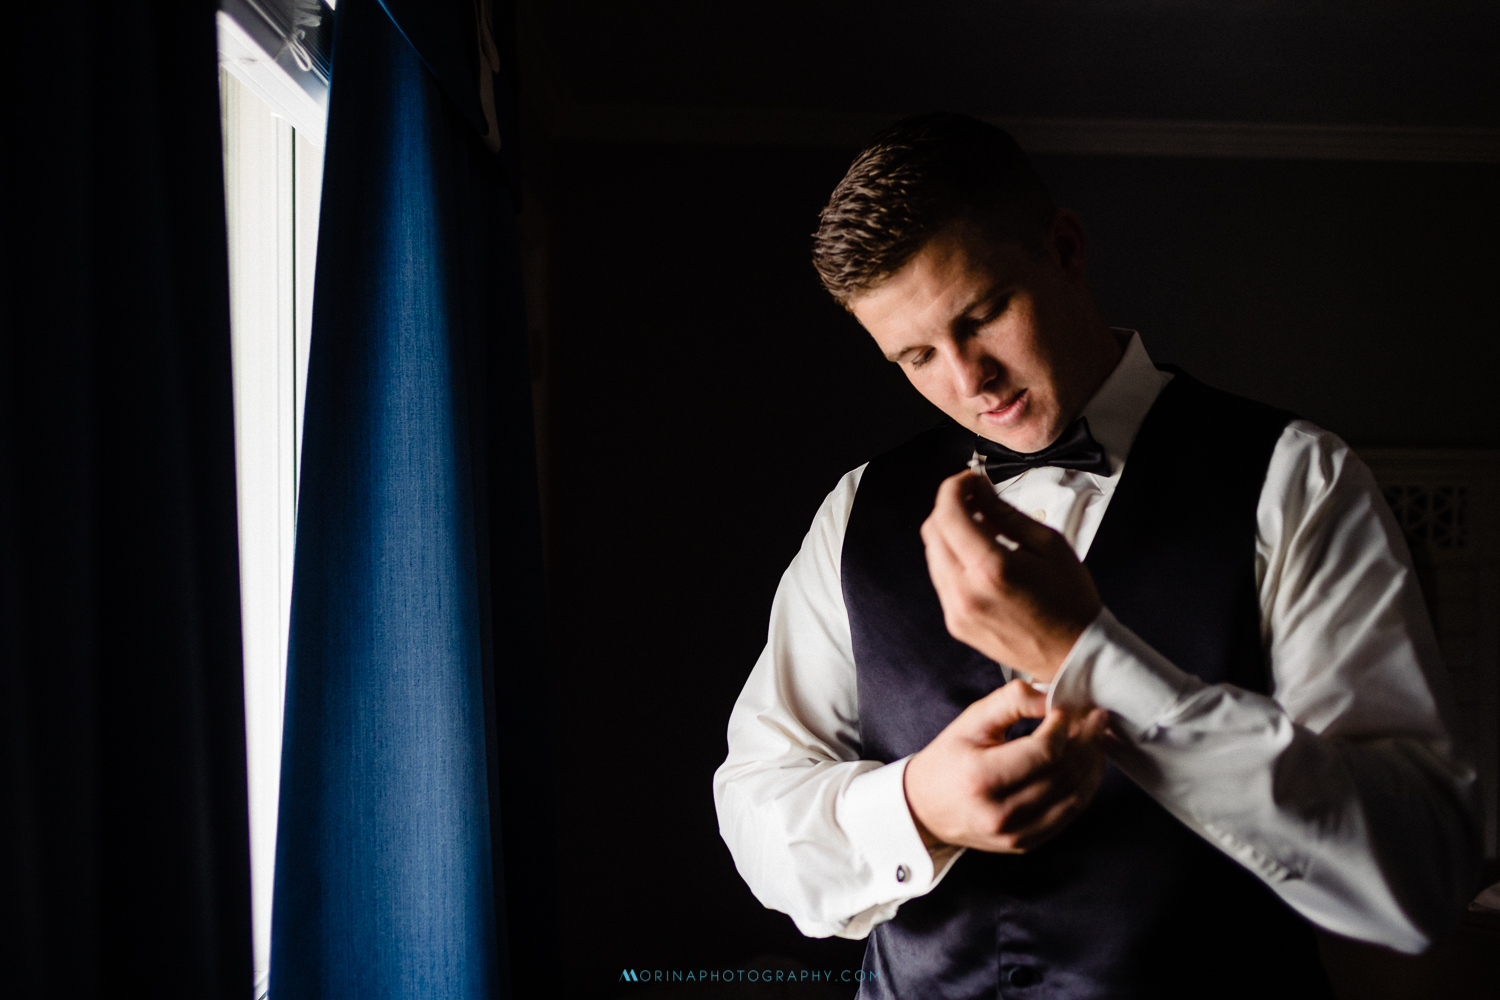 Amanda & Austin wedding at Crystal Point Yacht Club 1.jpg